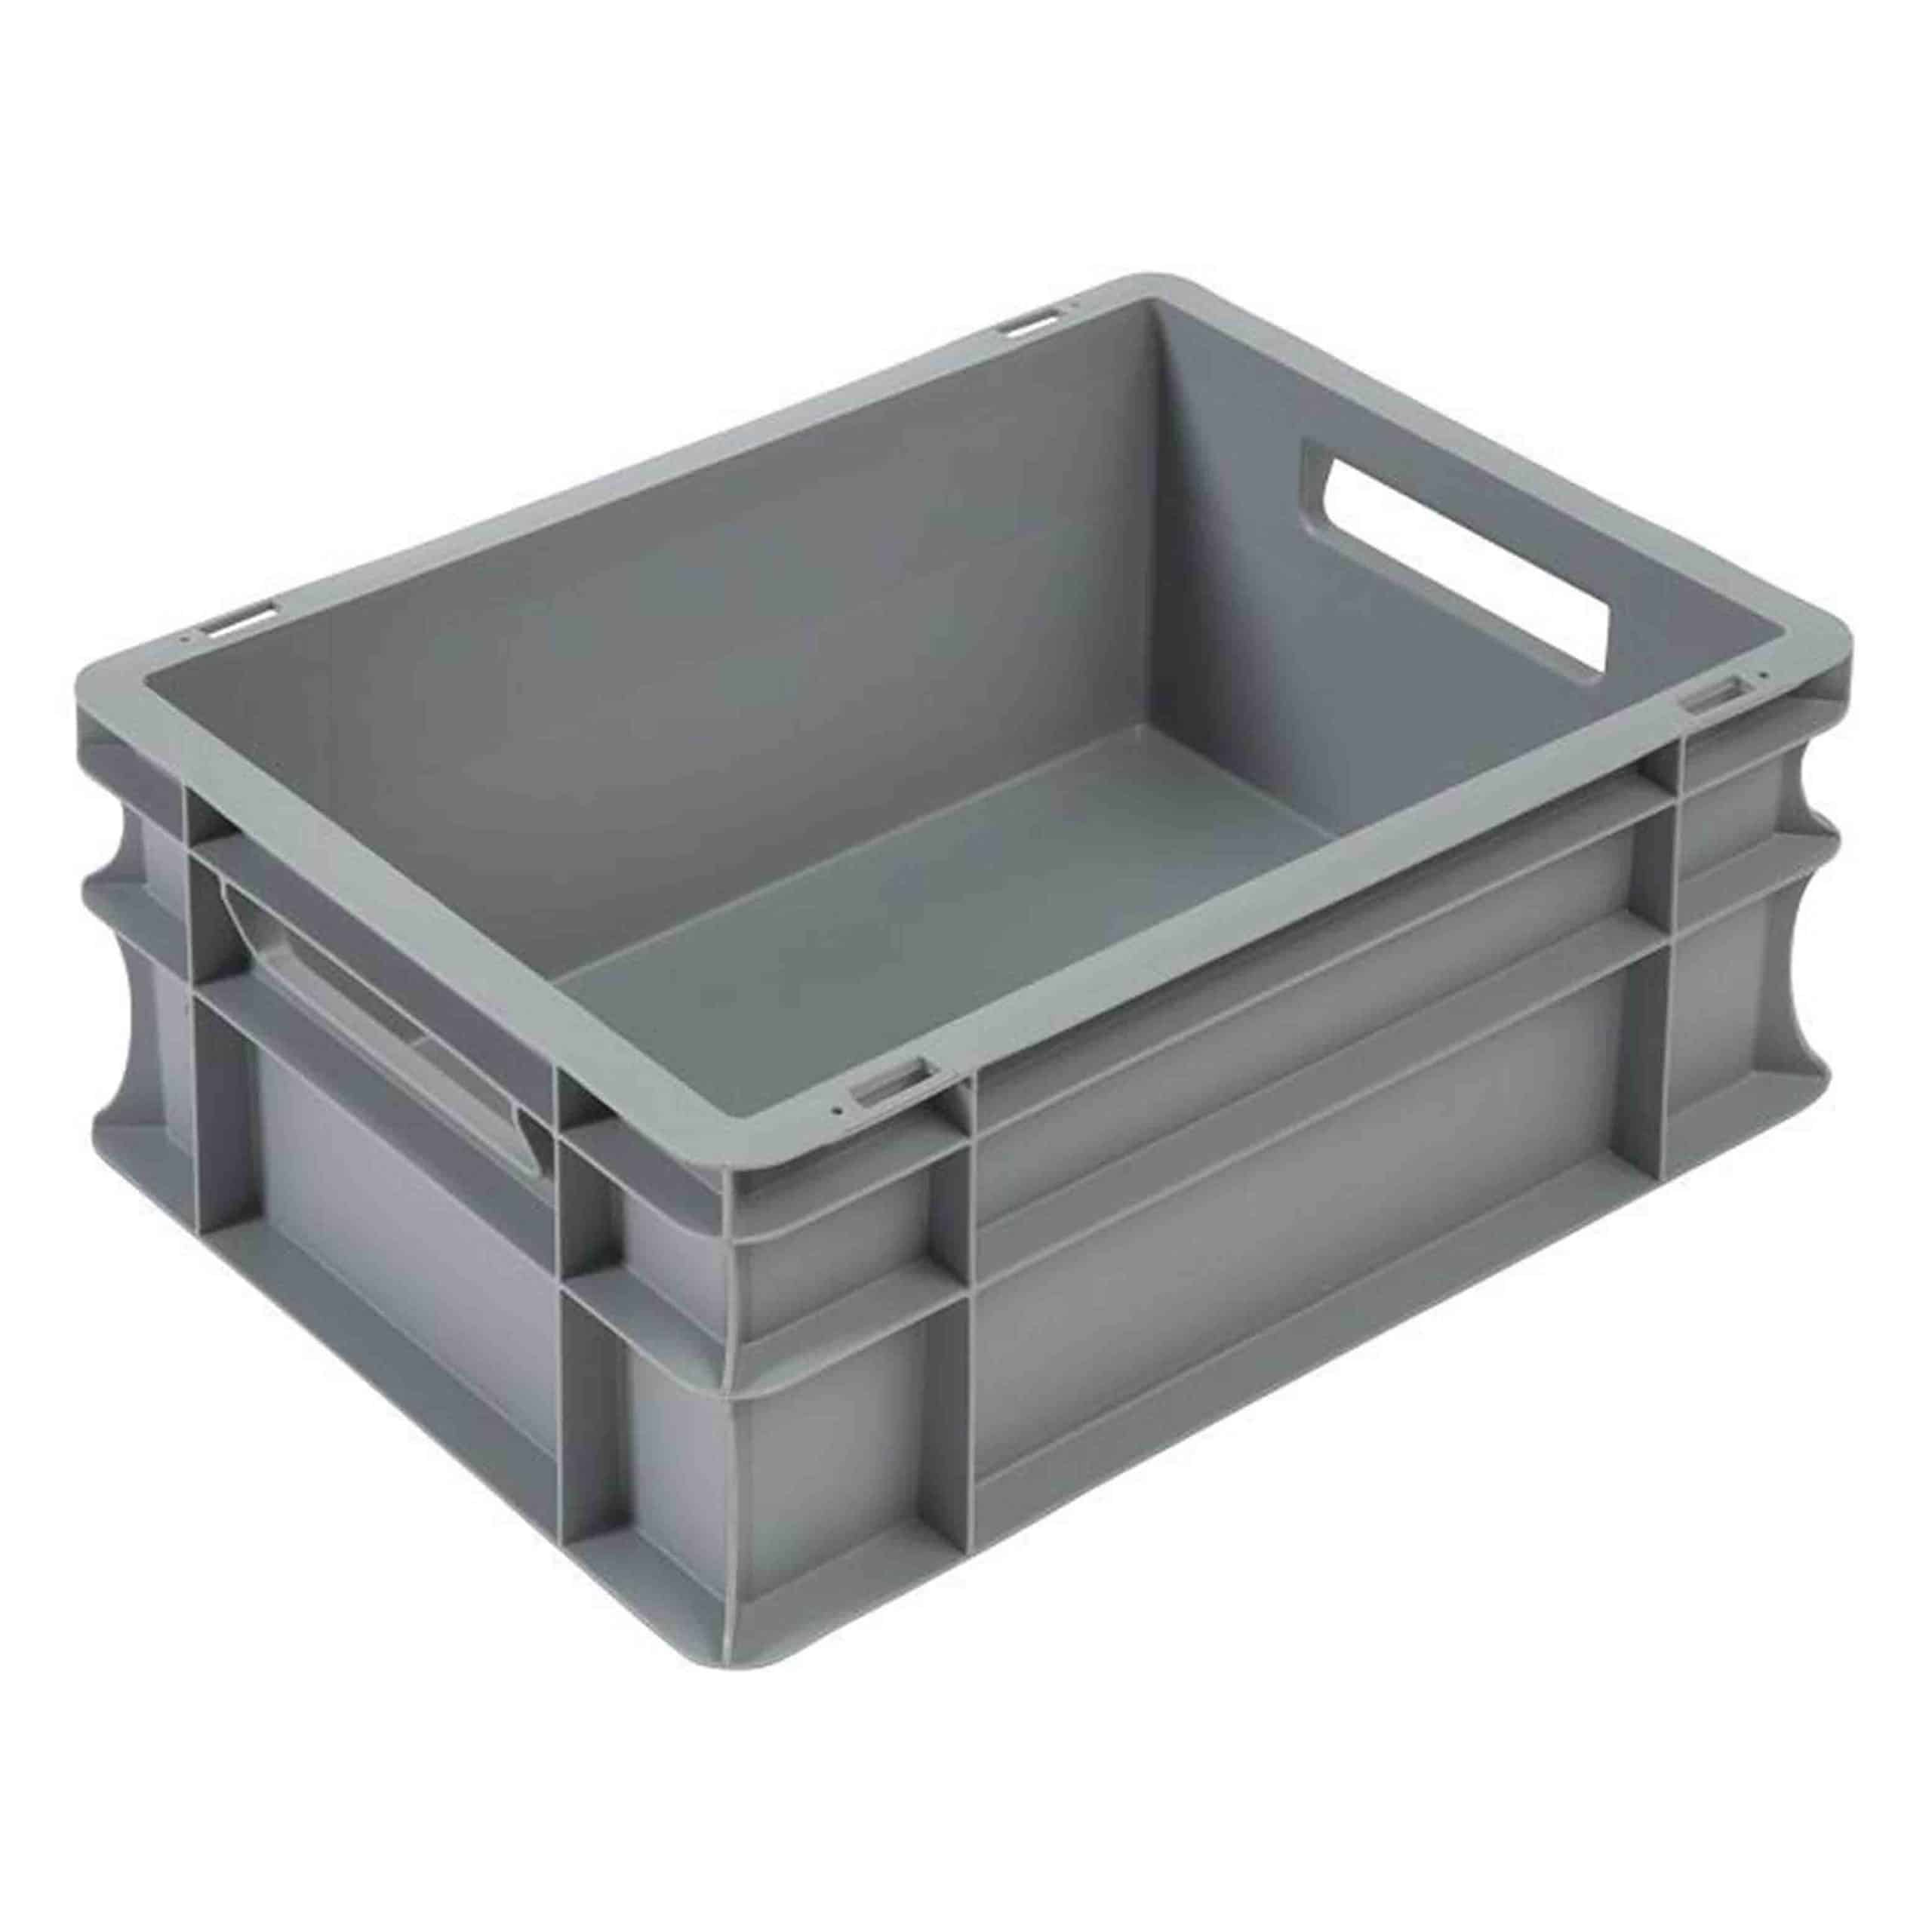 15 Litre Euro Containers